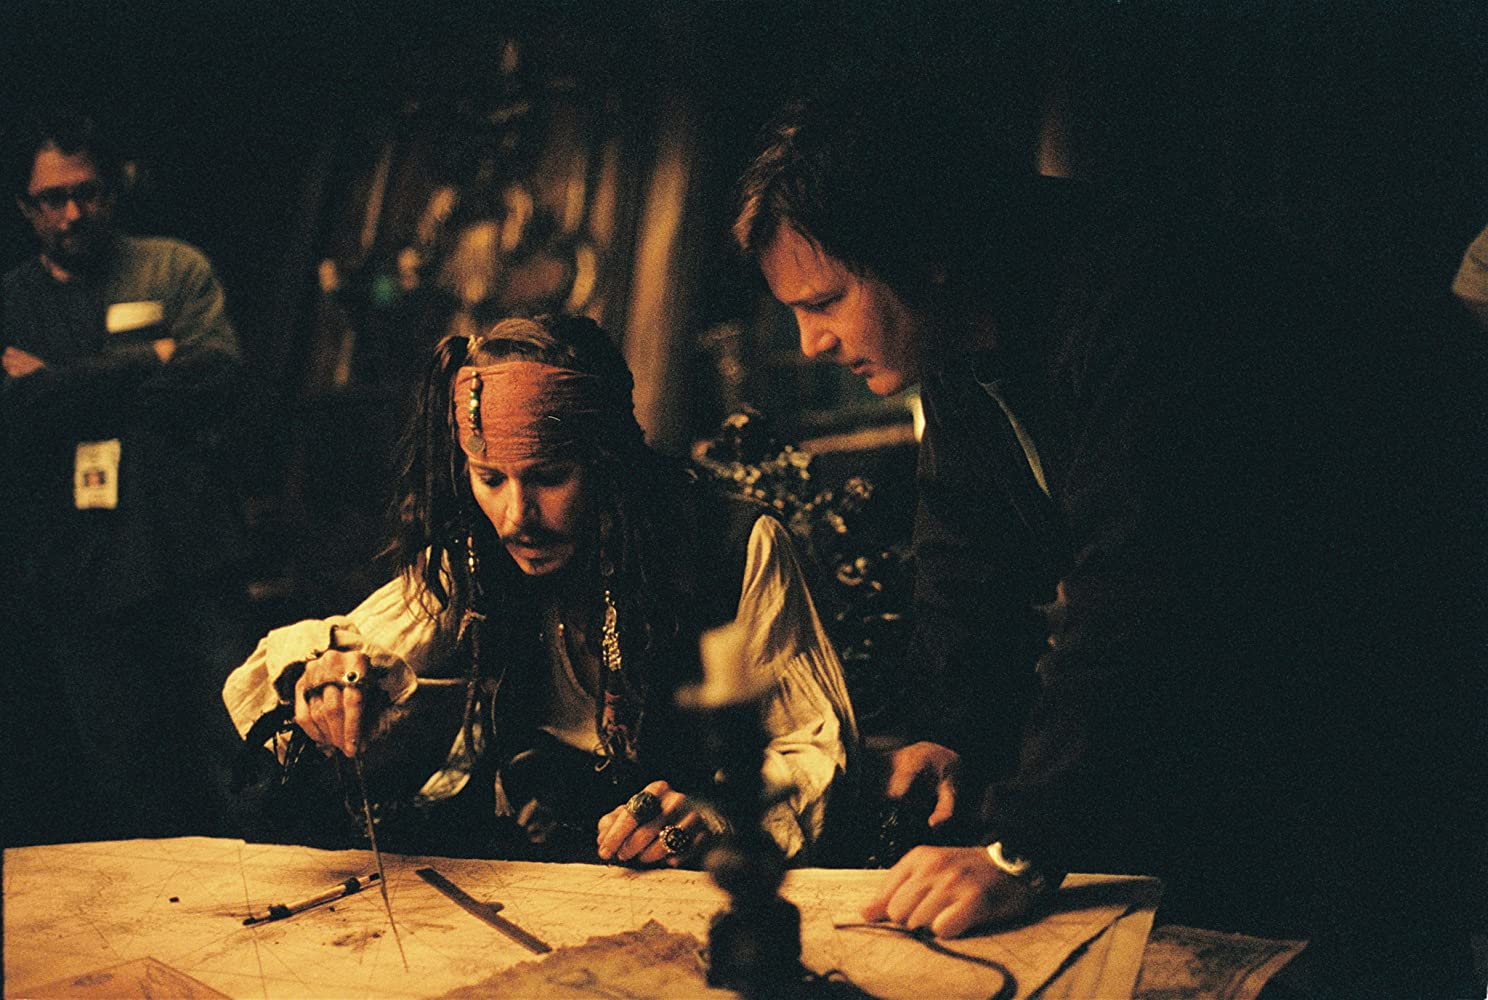 Johnny Depp and Gore Verbinski in Pirates of the Caribbean: Dead Man's Chest (2006)